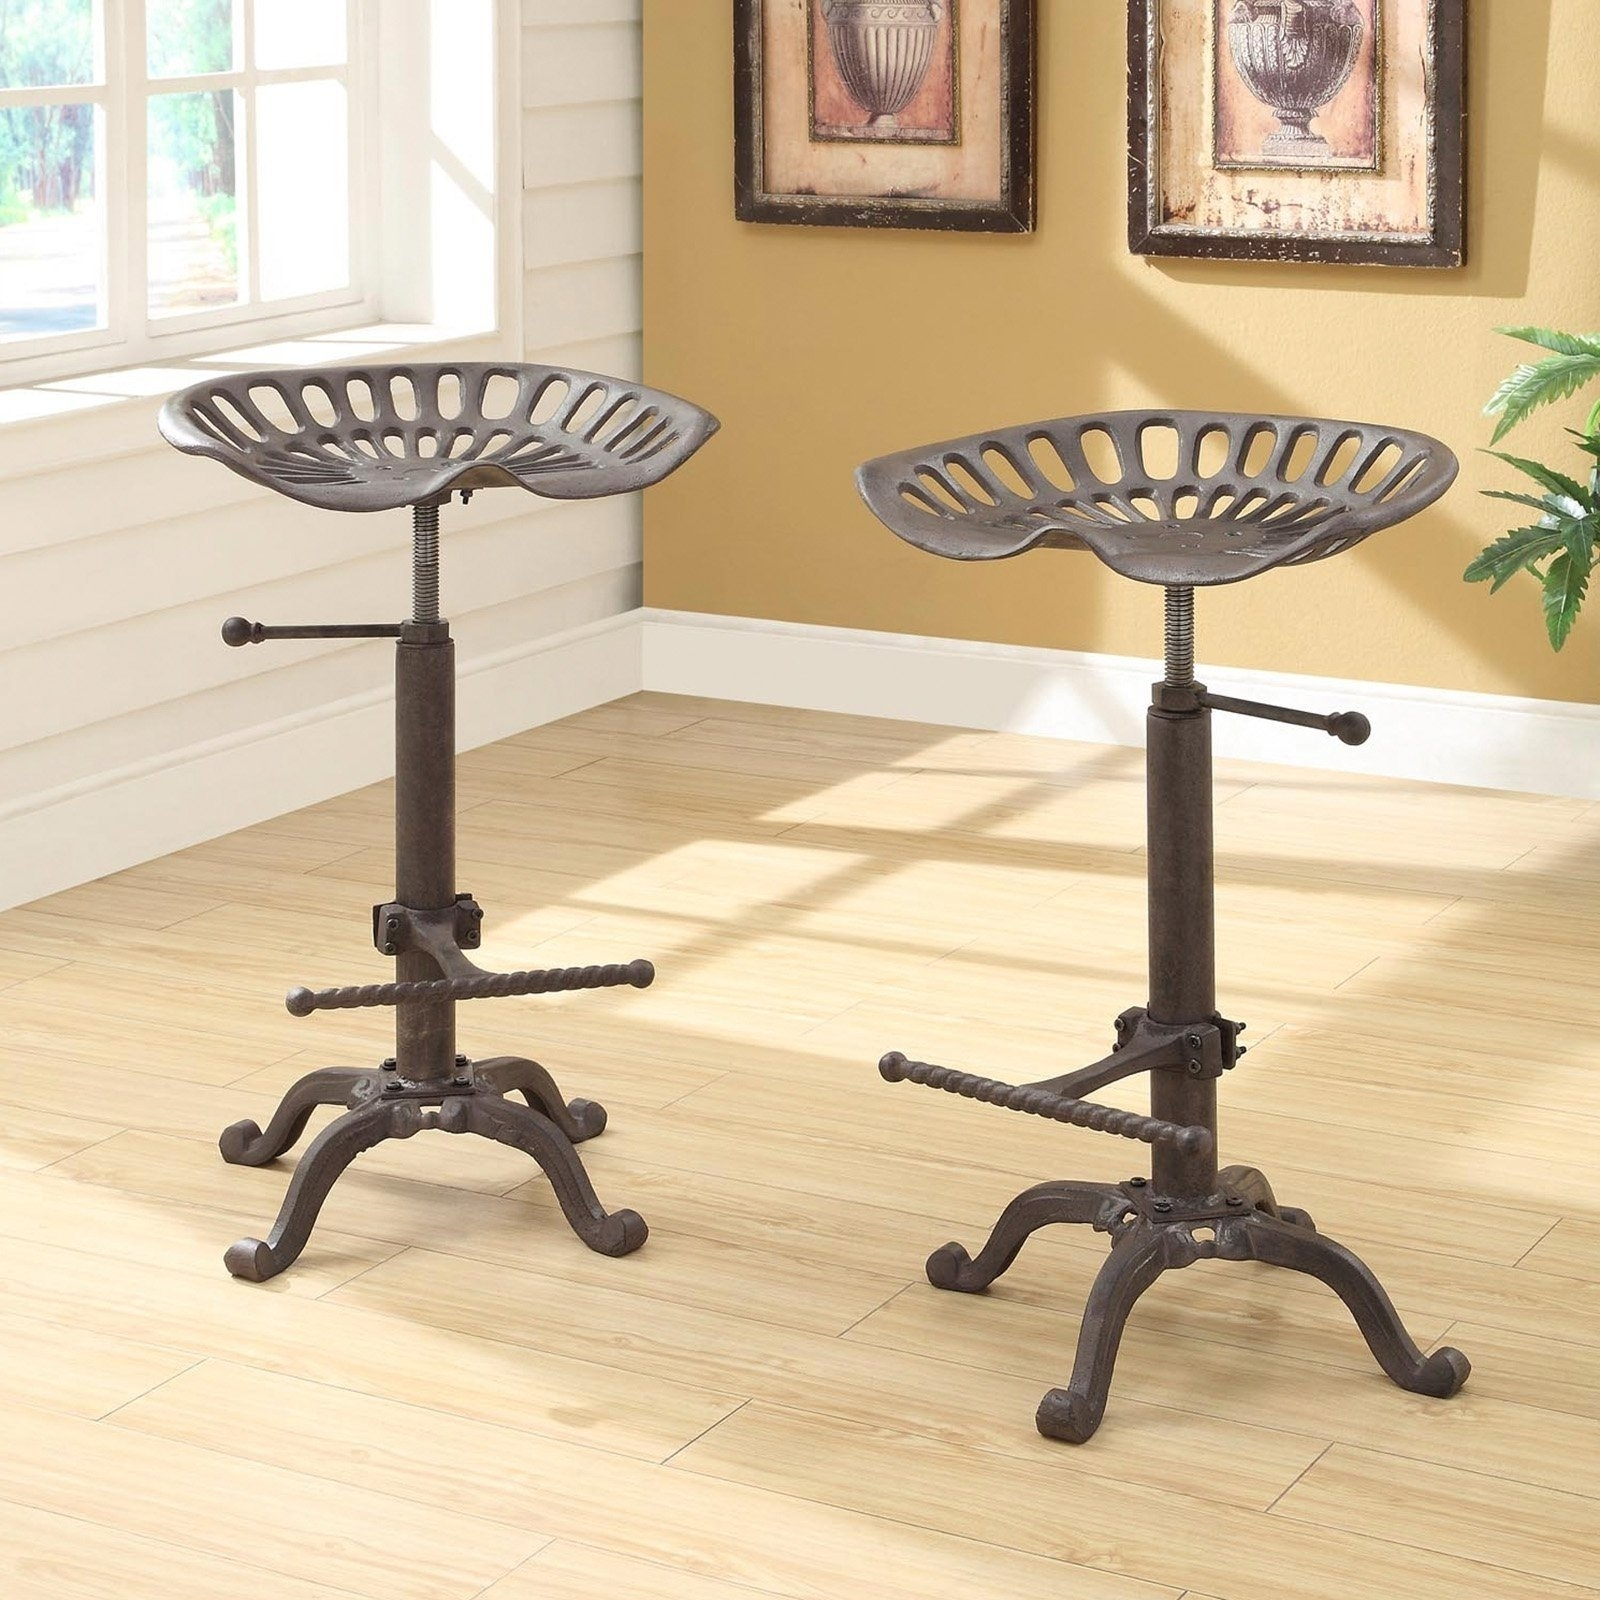 Swell Vintage Drafting Stool Wood Randolph Indoor And Outdoor Design Alphanode Cool Chair Designs And Ideas Alphanodeonline